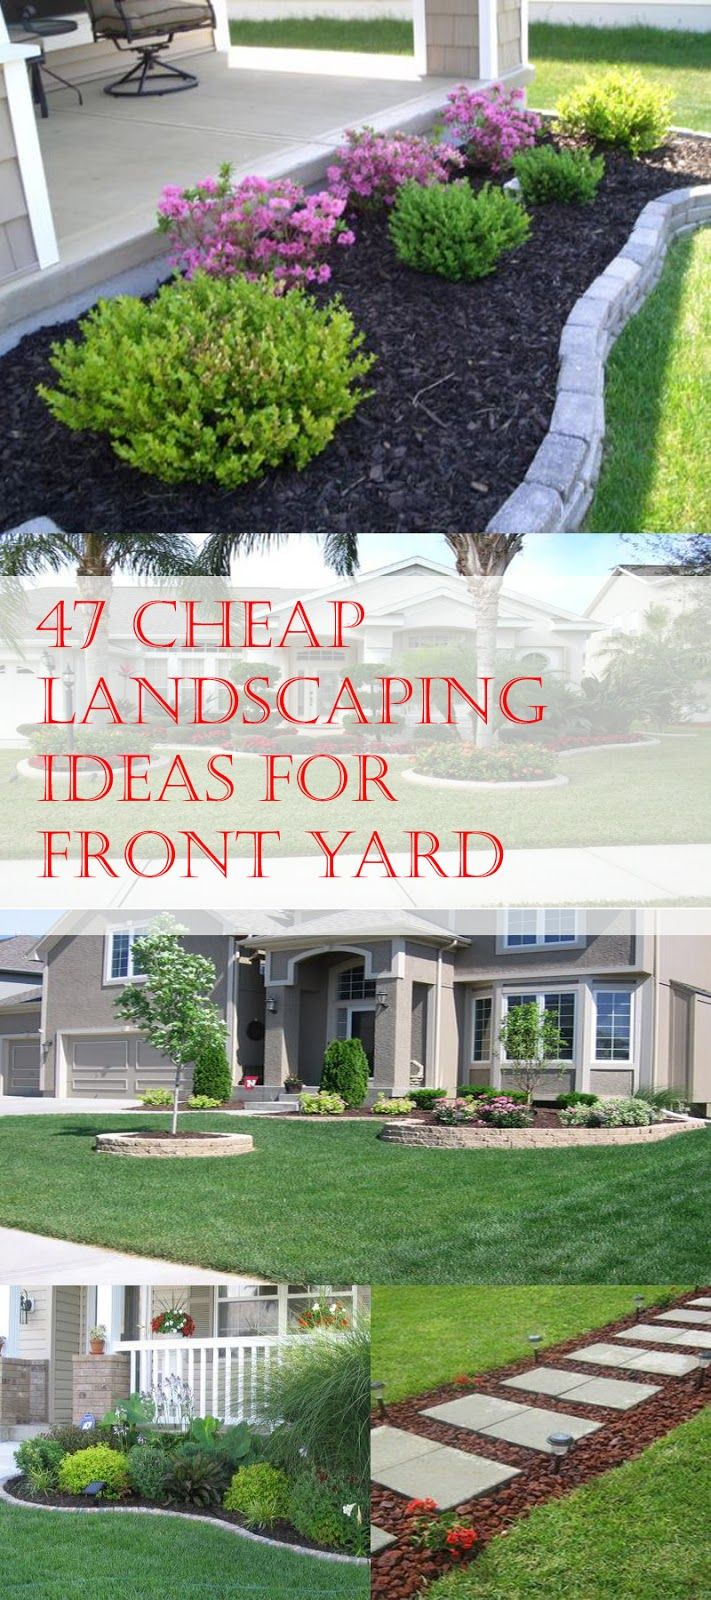 Front Yard Ideas On A Budget